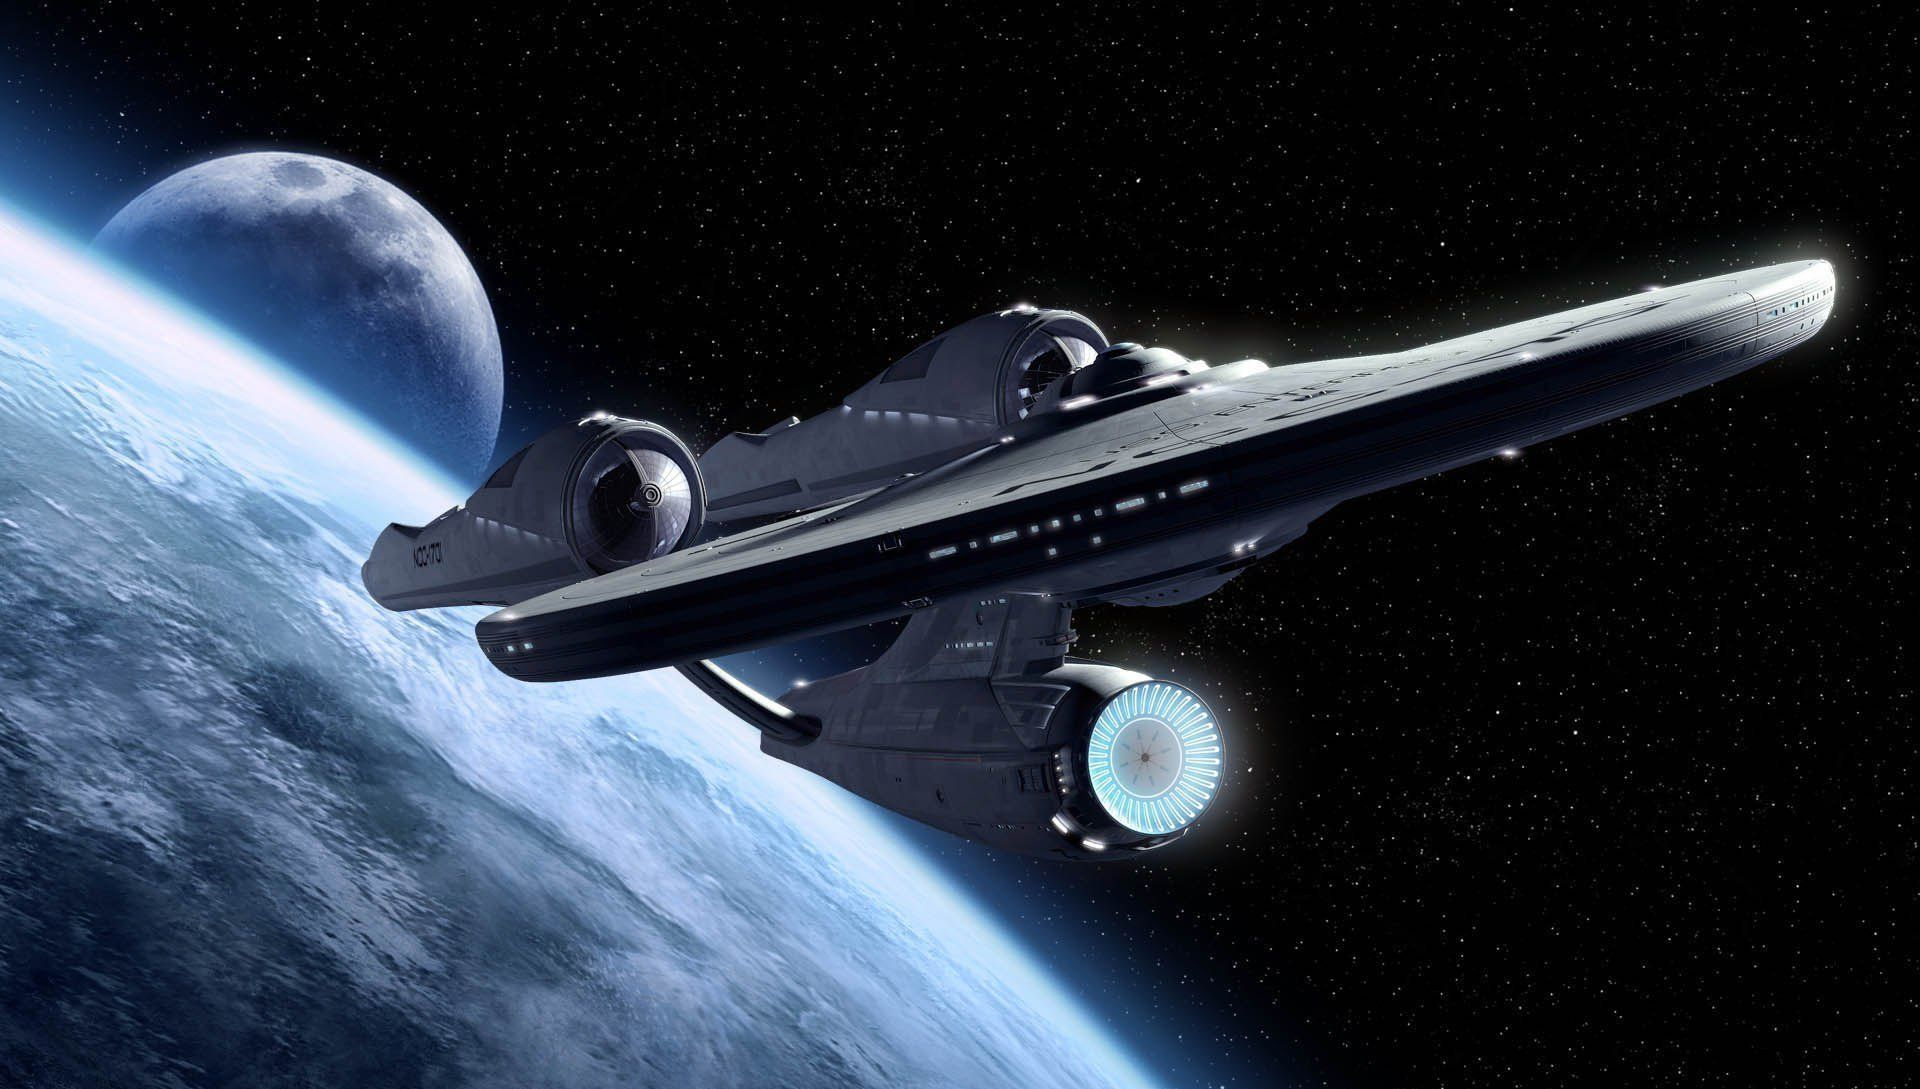 Fan de Star Trek, il construit son siège social en forme d'USS Enterprise #1